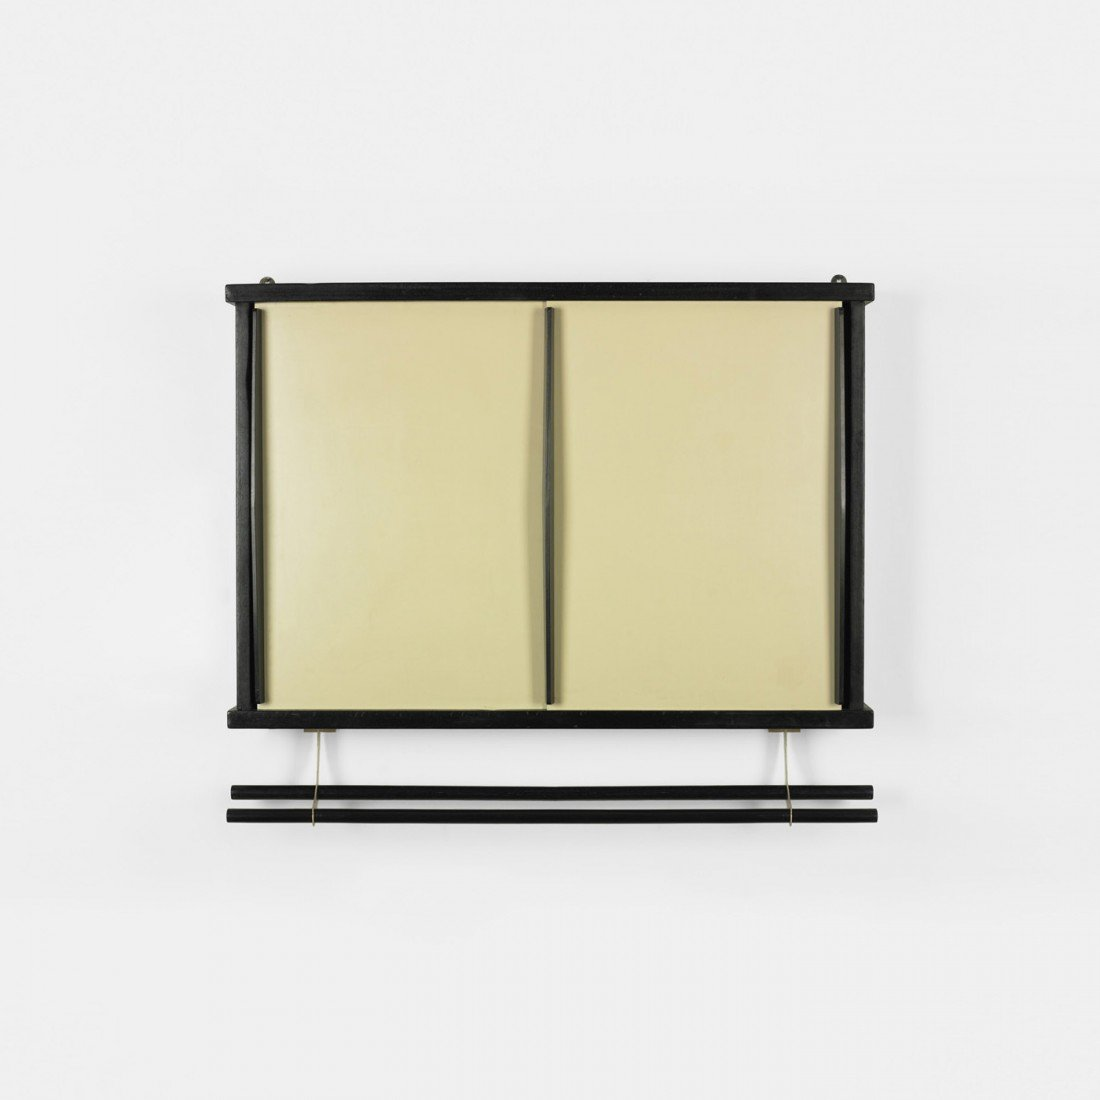 164: Charlotte Perriand wall-mounted cabinet